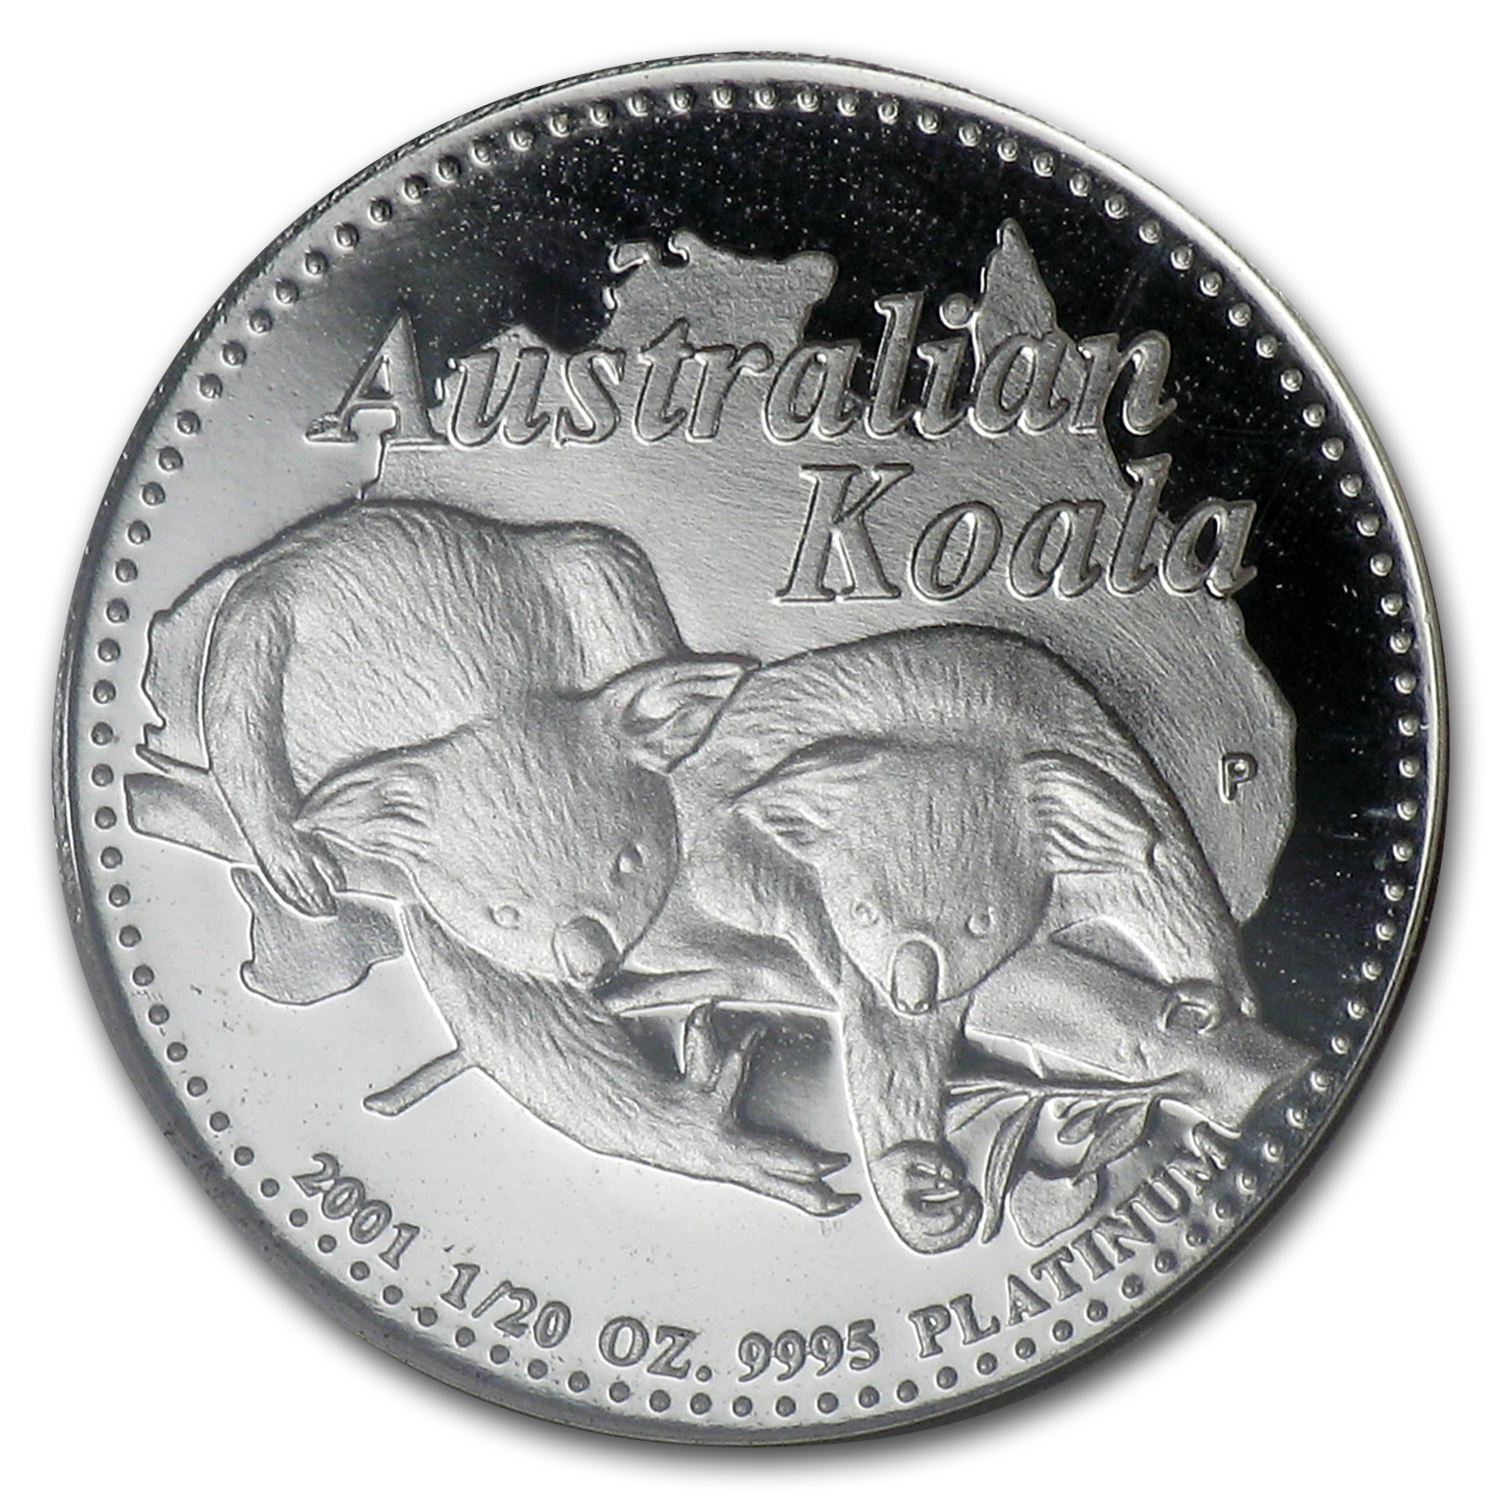 2001 5-Coin Australian Platinum Koala Proof Set (1.9 oz)